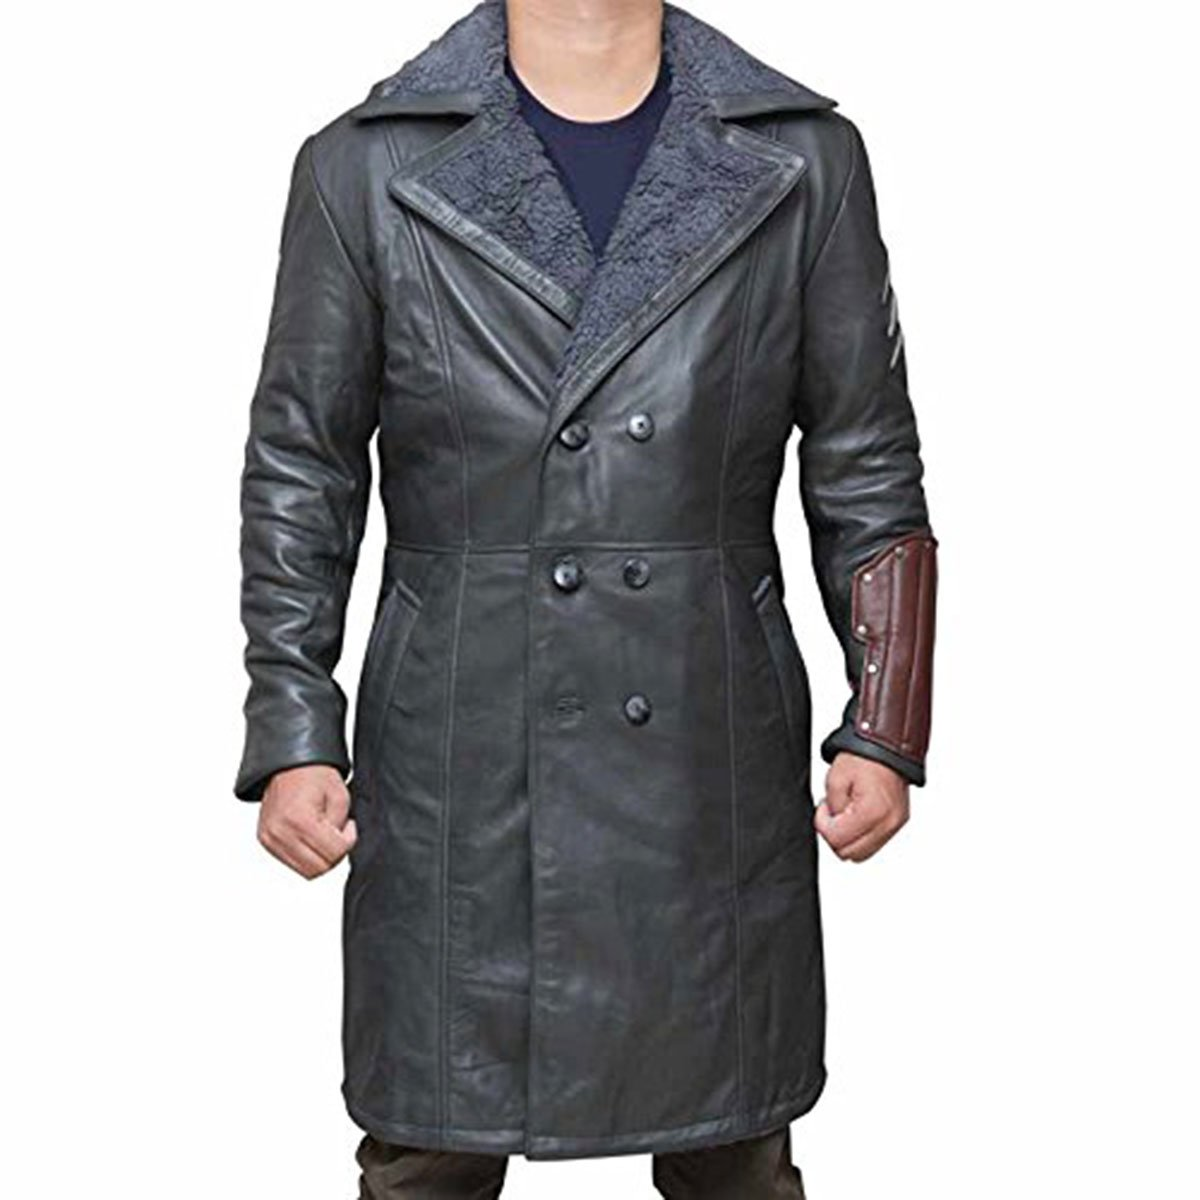 Suicide Squad Captain Boomerang Dark Grey Coat Surprise Gift For Father- PU (M, Grey)